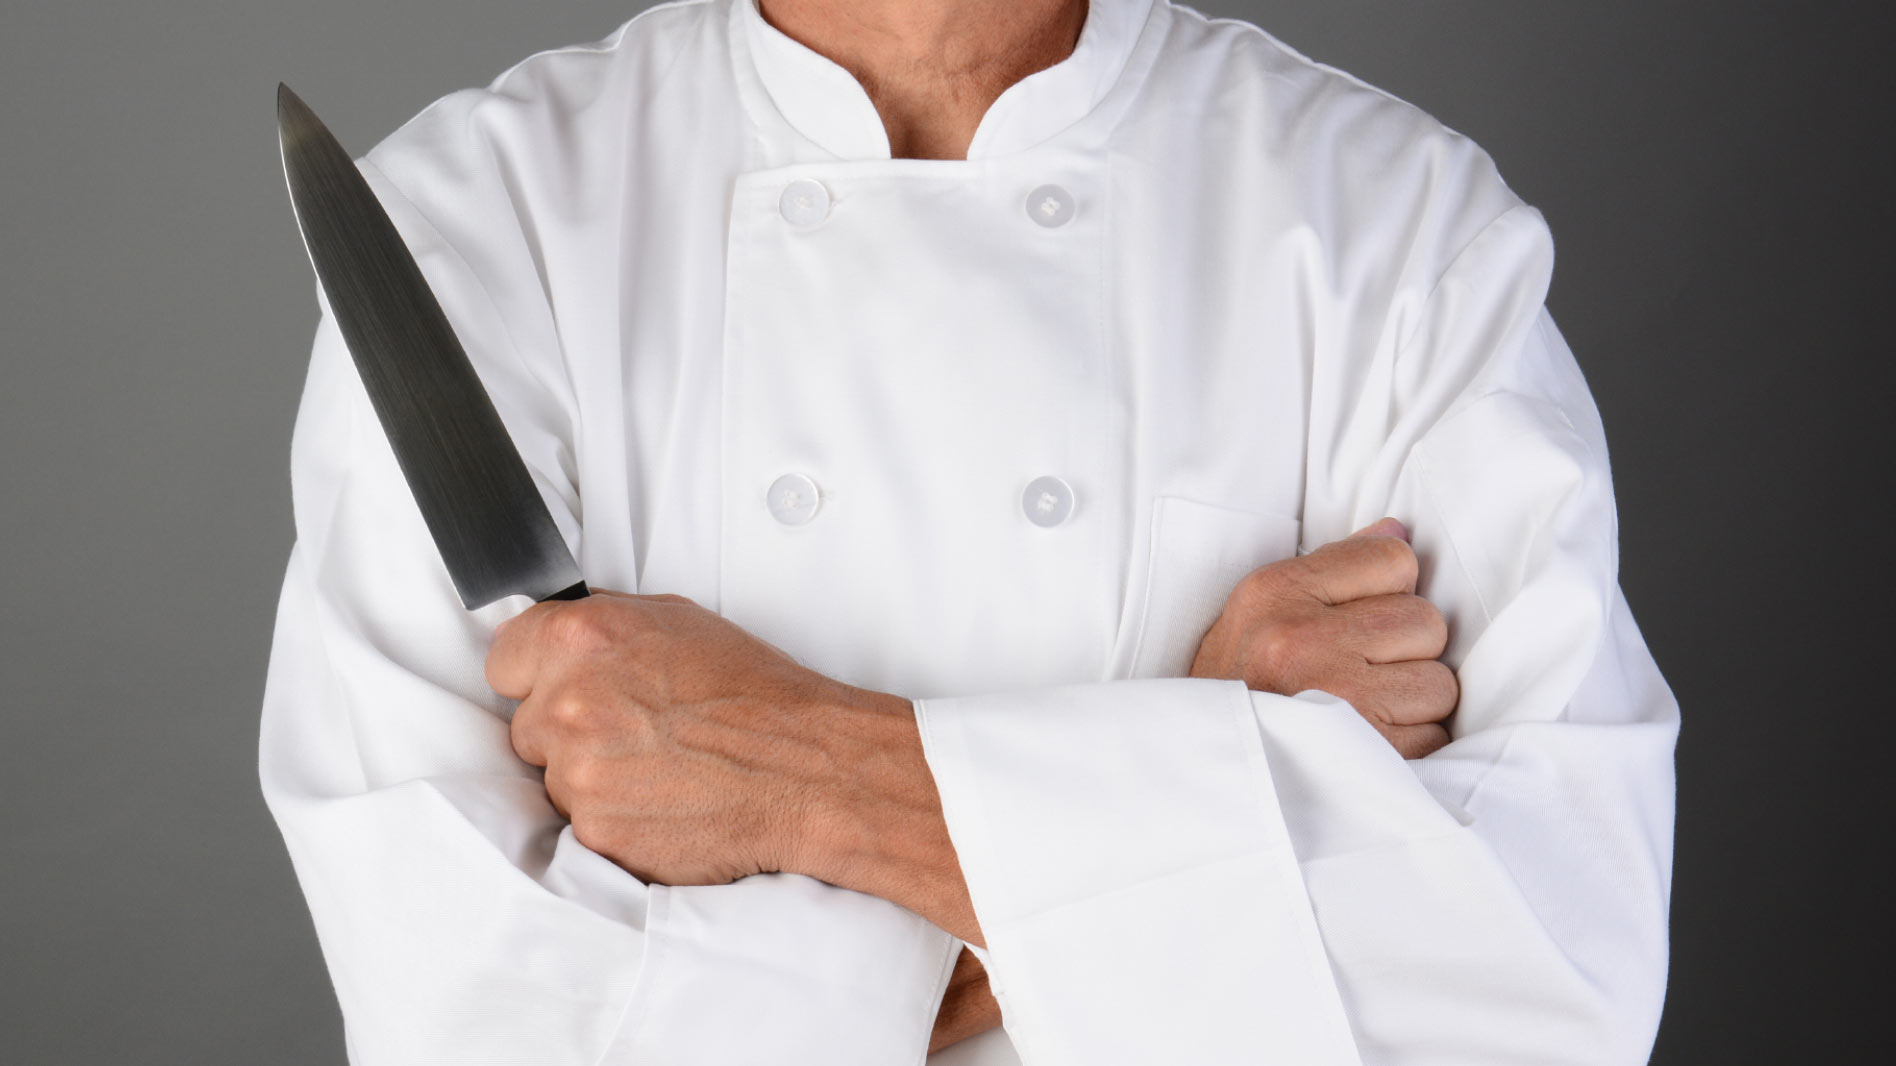 Prime cut: The best chef's knives on the market